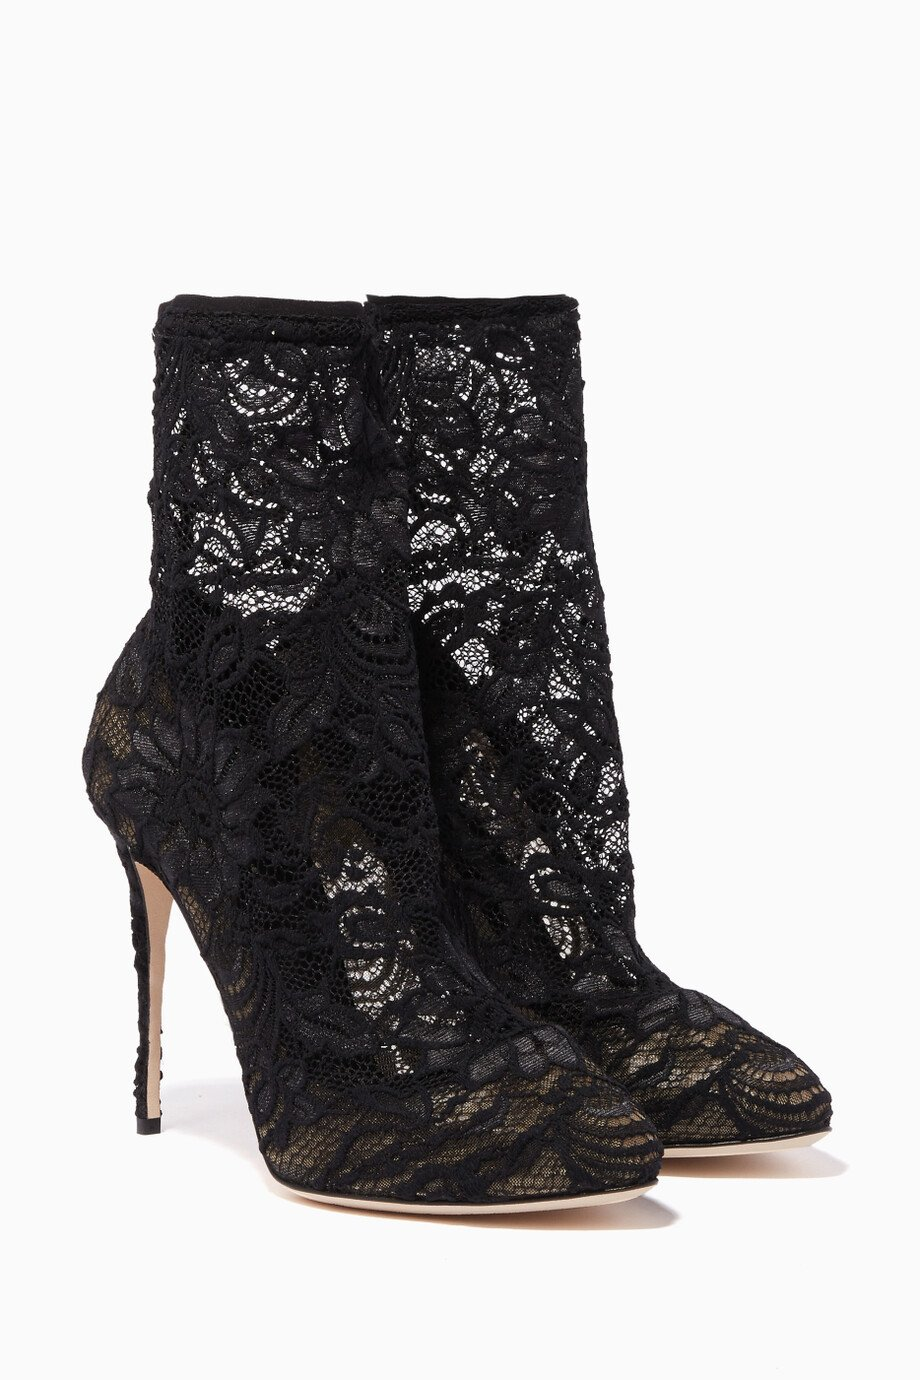 5f0d9fe0ee84 Shop Dolce & Gabbana Black Black Coco Lace Sock Boots for Women | Ounass